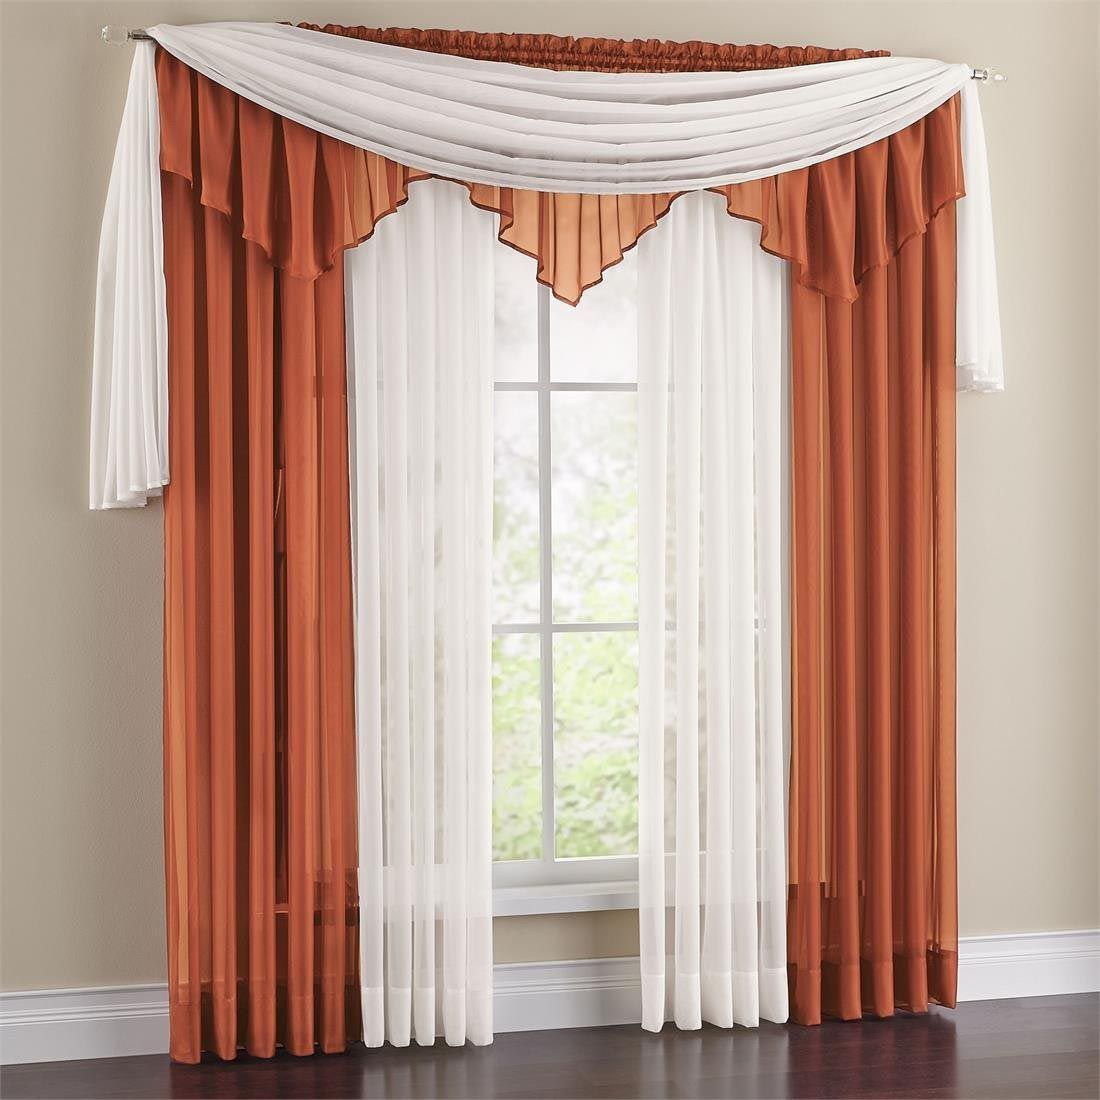 Sheer Scarf Valance Window Treatments Part - 23: Window · Vista Sheer 288 Inch Scarf Valance